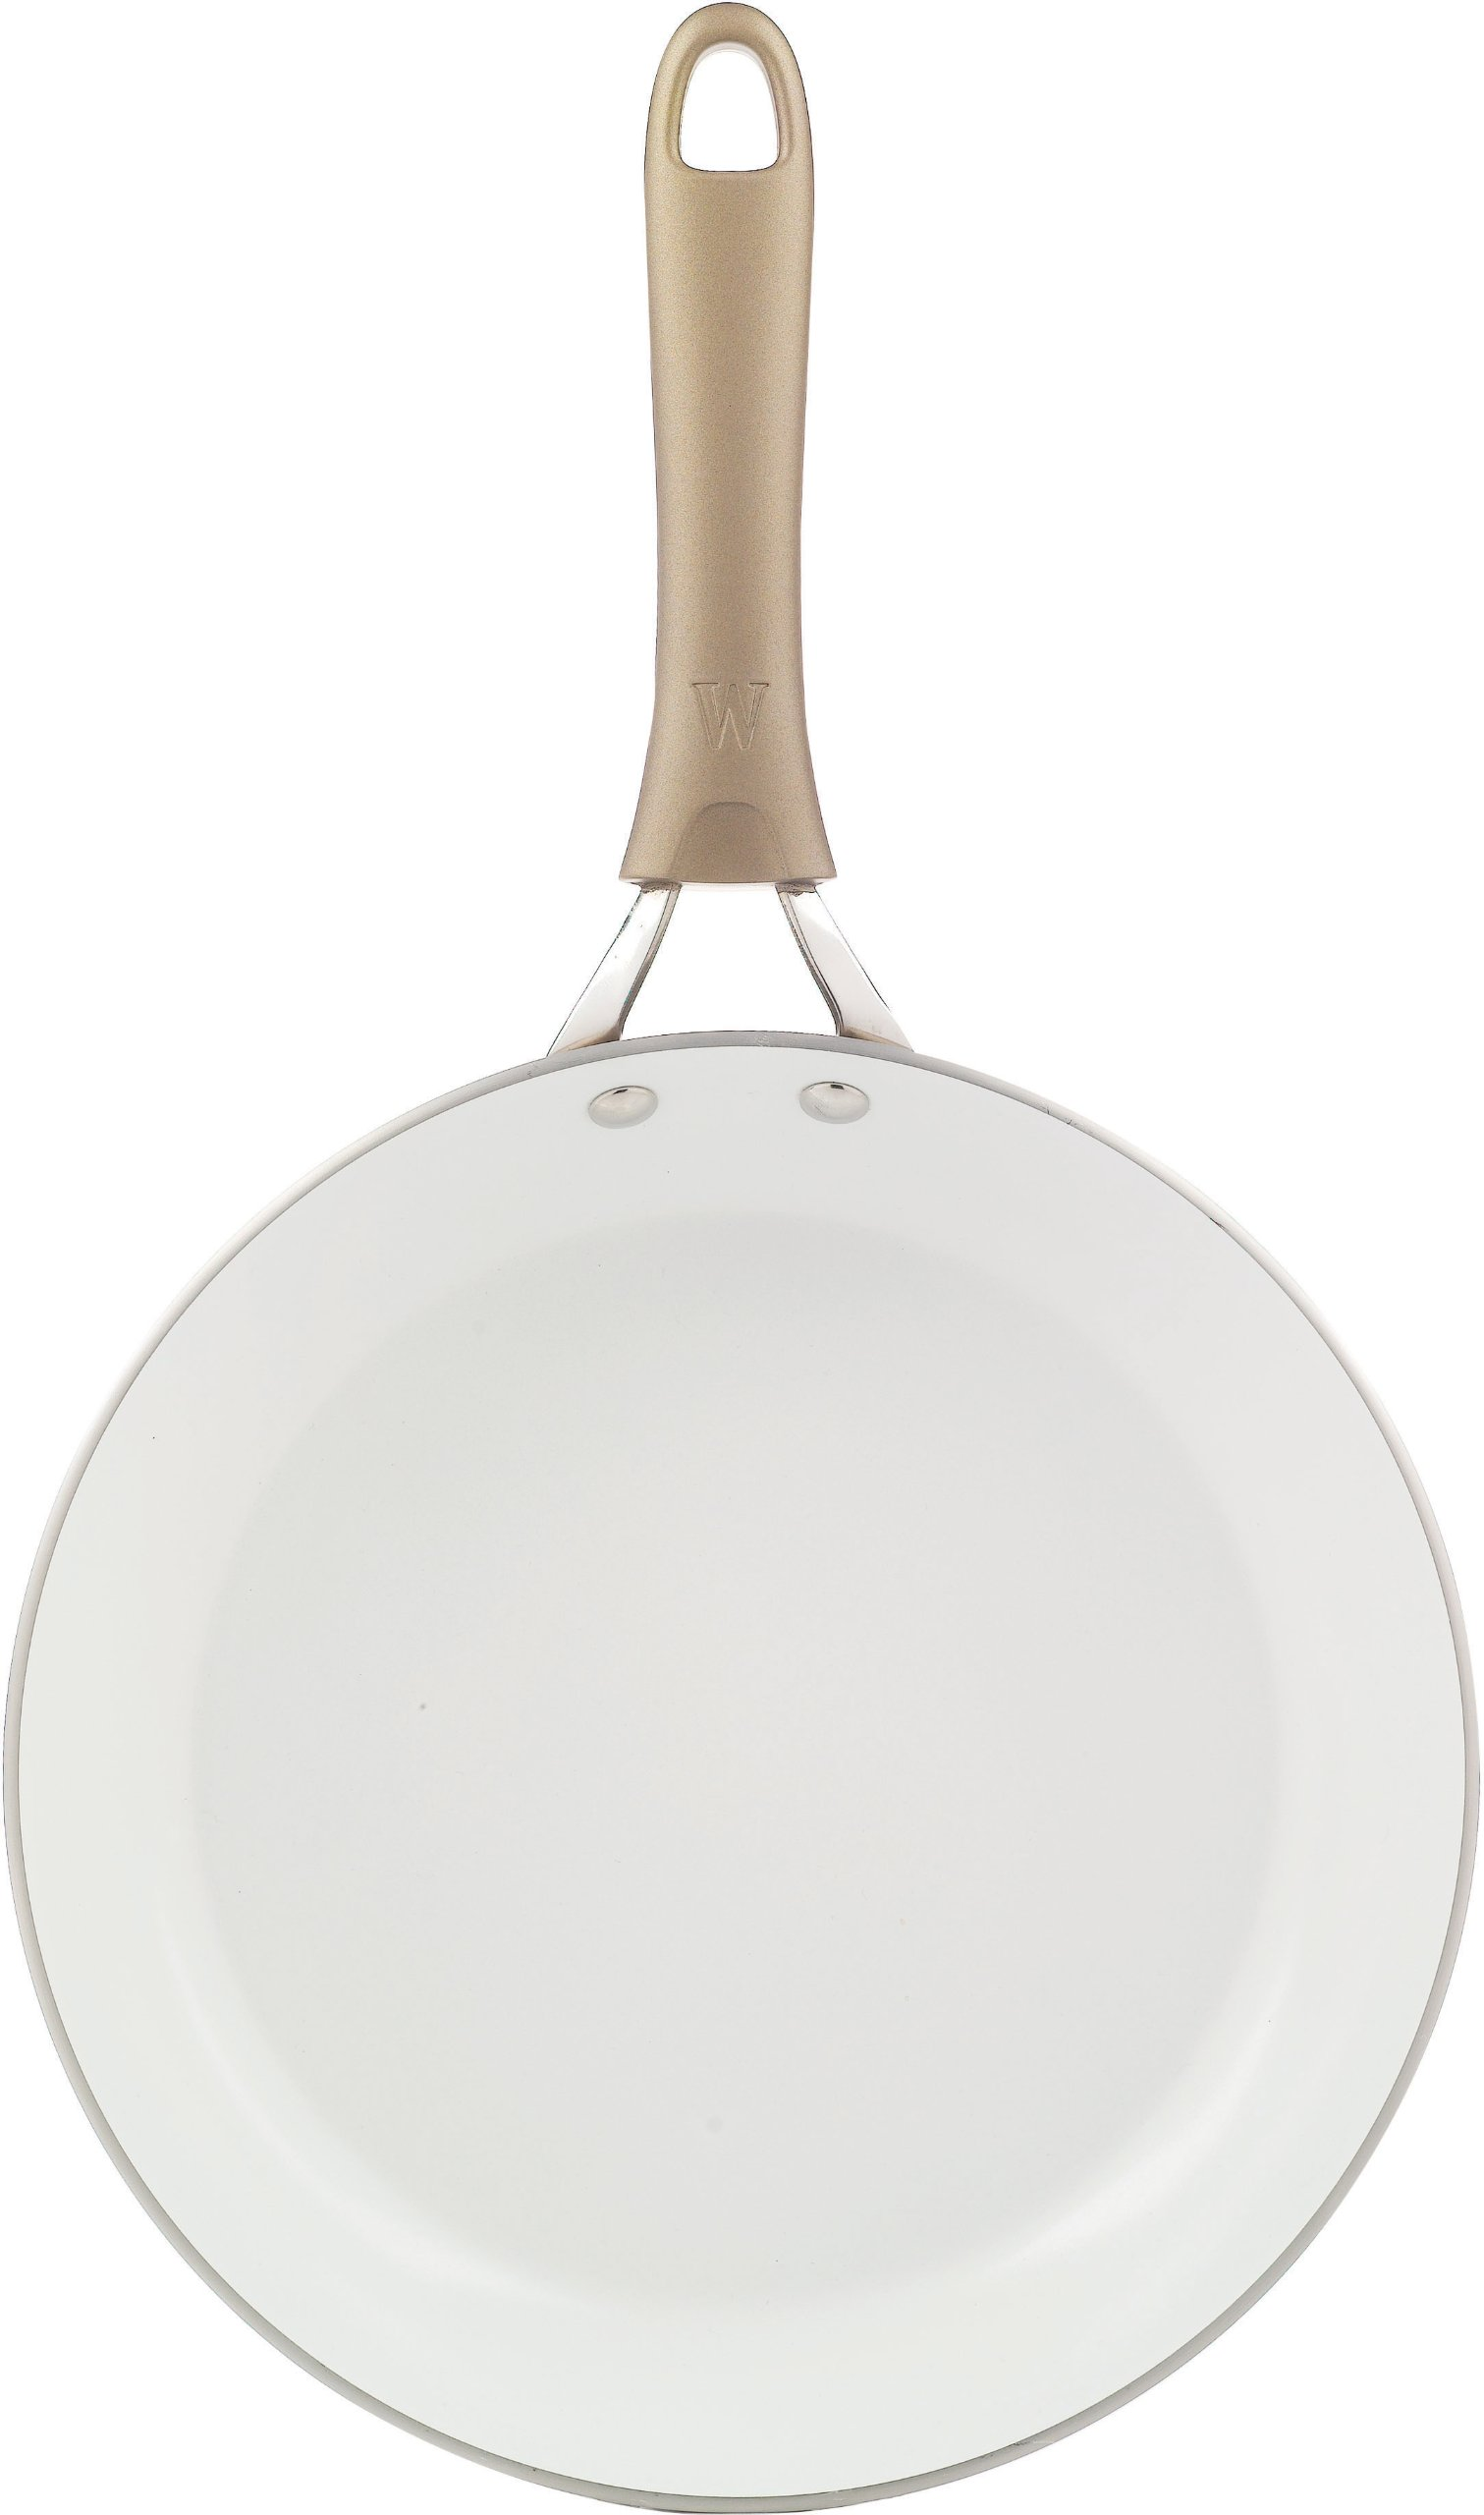 WearEver C944S2 Pure Living Nonstick Ceramic Coating Scratch Resistant PTFE PFOA and Cadmium Free Dishwasher Safe Oven Safe 10-Inch and 8-Inch Fry Pan Cookware Set, 2-Piece, Gold by WearEver (Image #5)